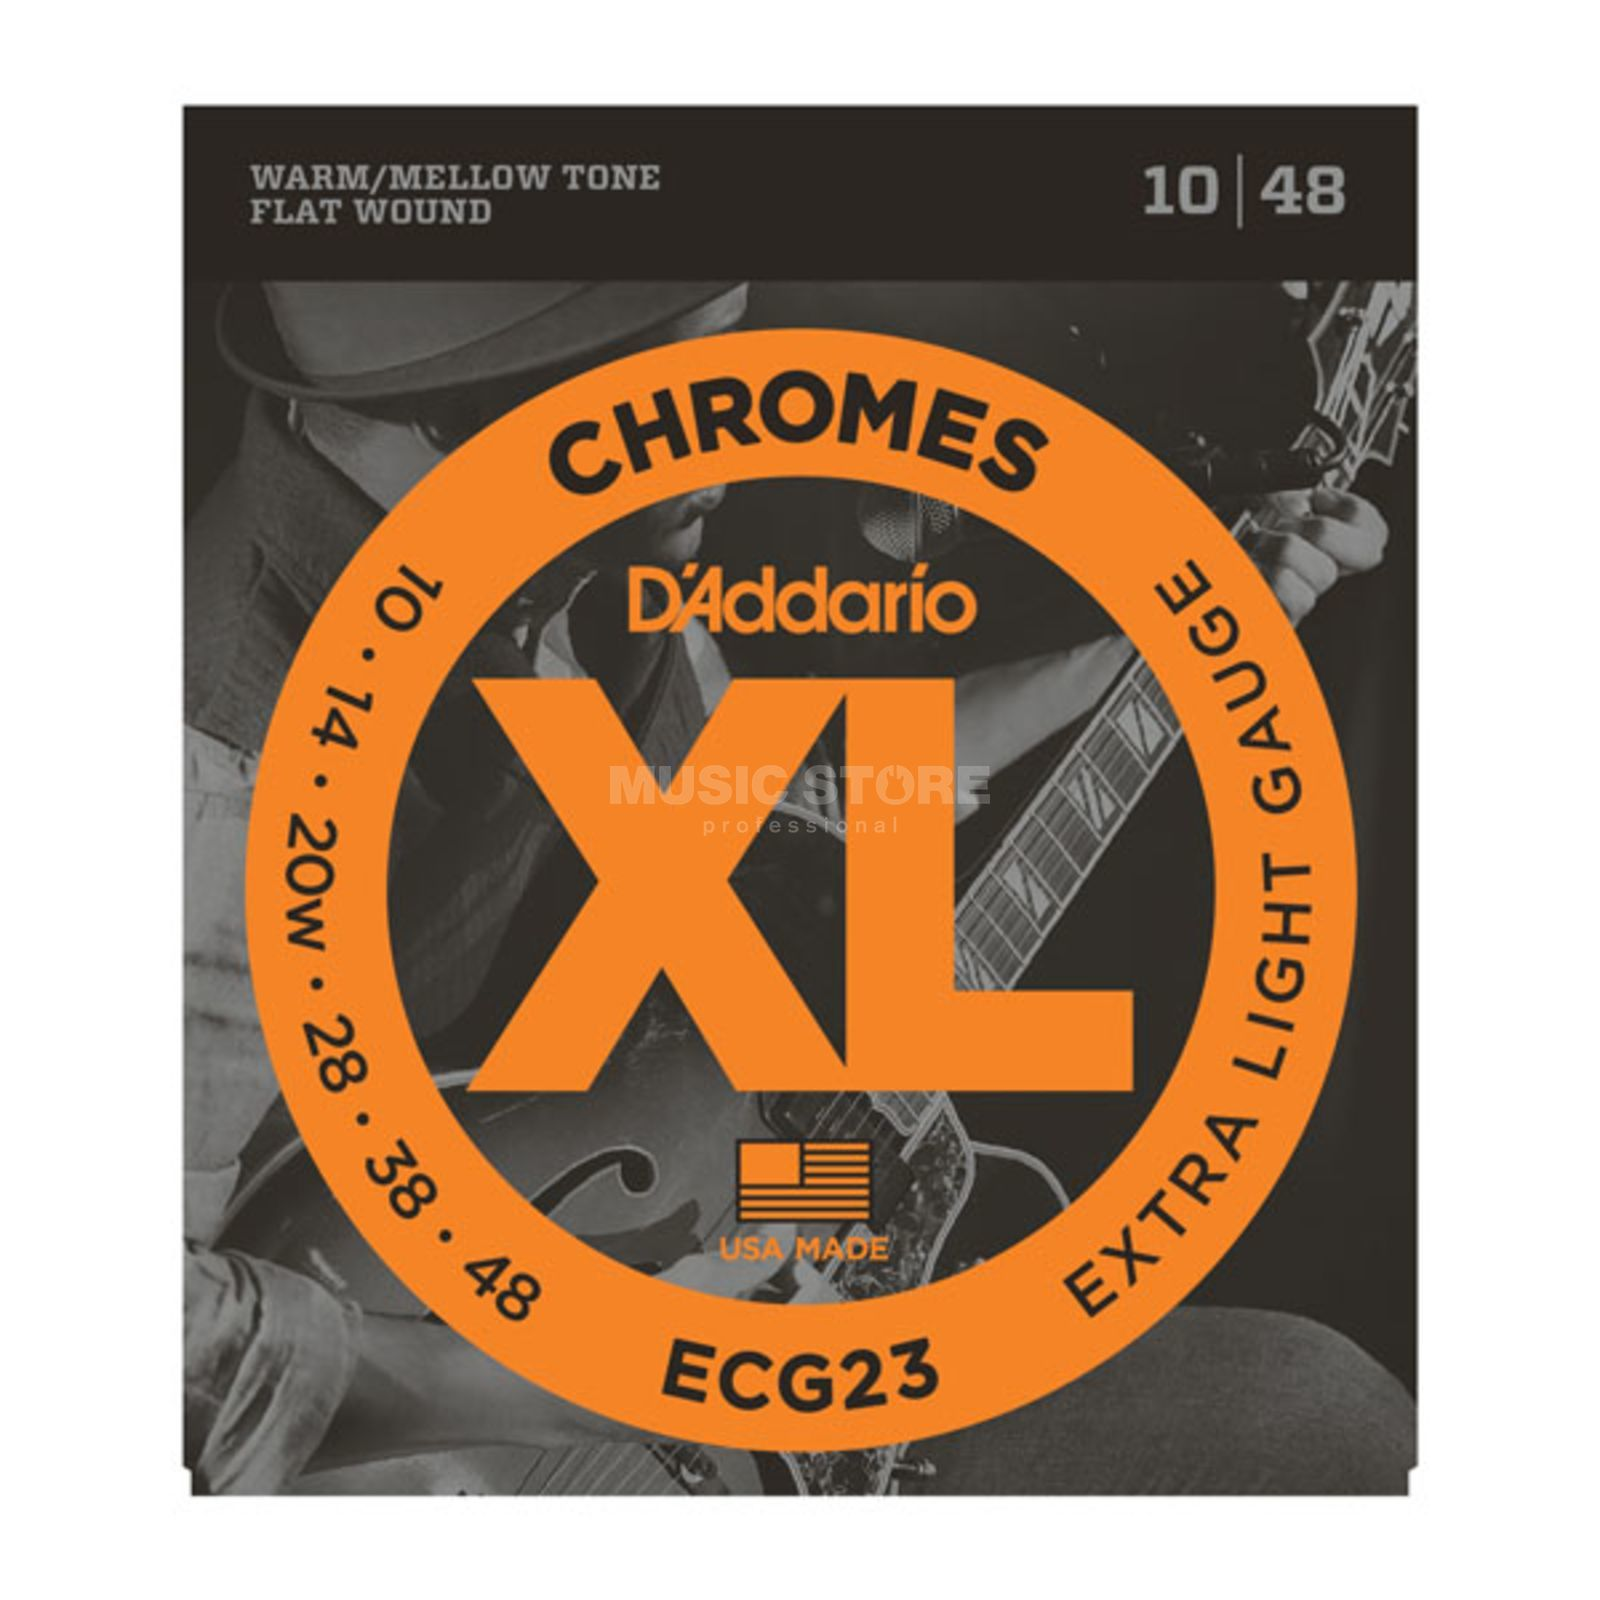 D'Addario E-Guitar Strings ECG23 10-48 Chromes Flatwound Produktbillede